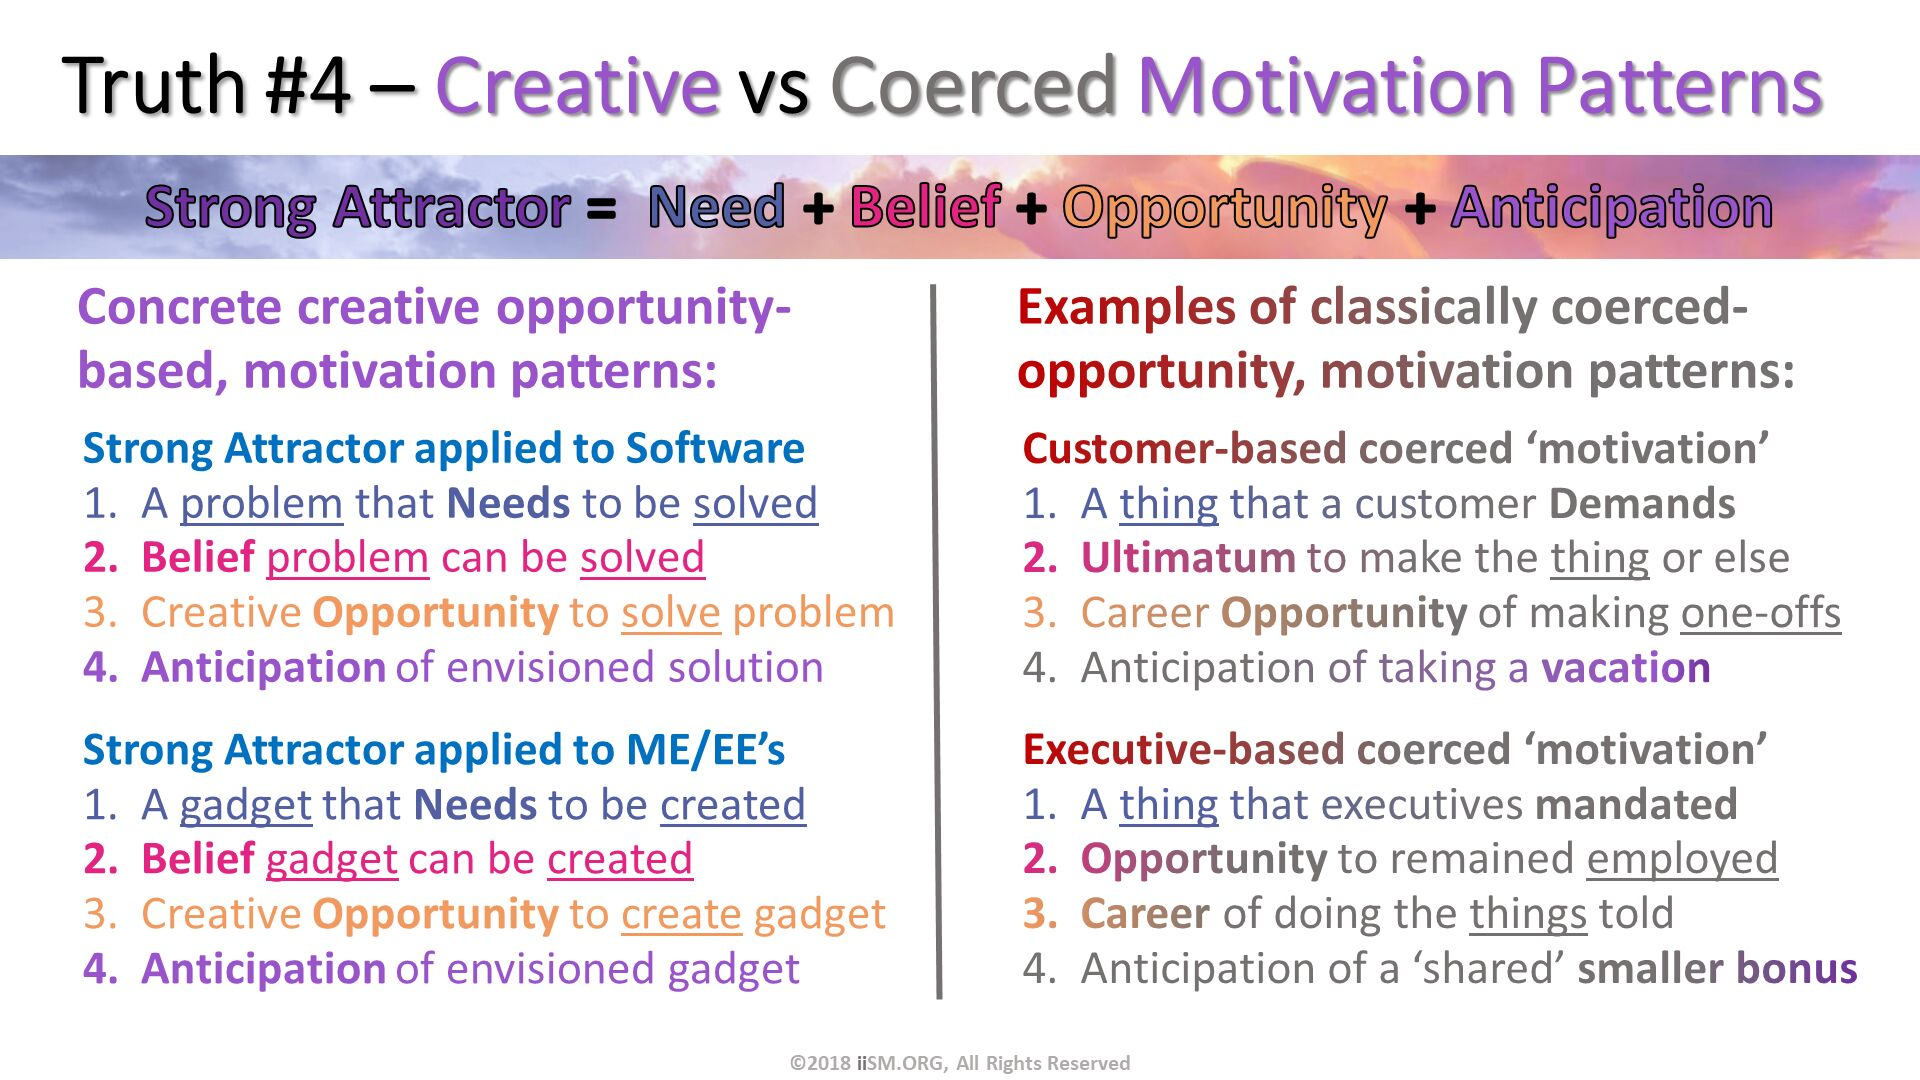 Truth #4 – Creative vs Coerced Motivation Patterns. Customer-based coerced 'motivation' A thing that a customer Demands Ultimatum to make the thing or else  Career Opportunity of making one-offs Anticipation of taking a vacation. Strong Attractor applied to ME/EE's A gadget that Needs to be created Belief gadget can be created Creative Opportunity to create gadget Anticipation of envisioned gadget. Strong Attractor applied to Software A problem that Needs to be solved Belief problem can be solved Creative Opportunity to solve problem Anticipation of envisioned solution. Executive-based coerced 'motivation' A thing that executives mandated Opportunity to remained employed Career of doing the things told Anticipation of a 'shared' smaller bonus. Concrete creative opportunity-based, motivation patterns:. ©2018 iiSM.ORG, All Rights Reserved. Examples of classically coerced-opportunity, motivation patterns:.